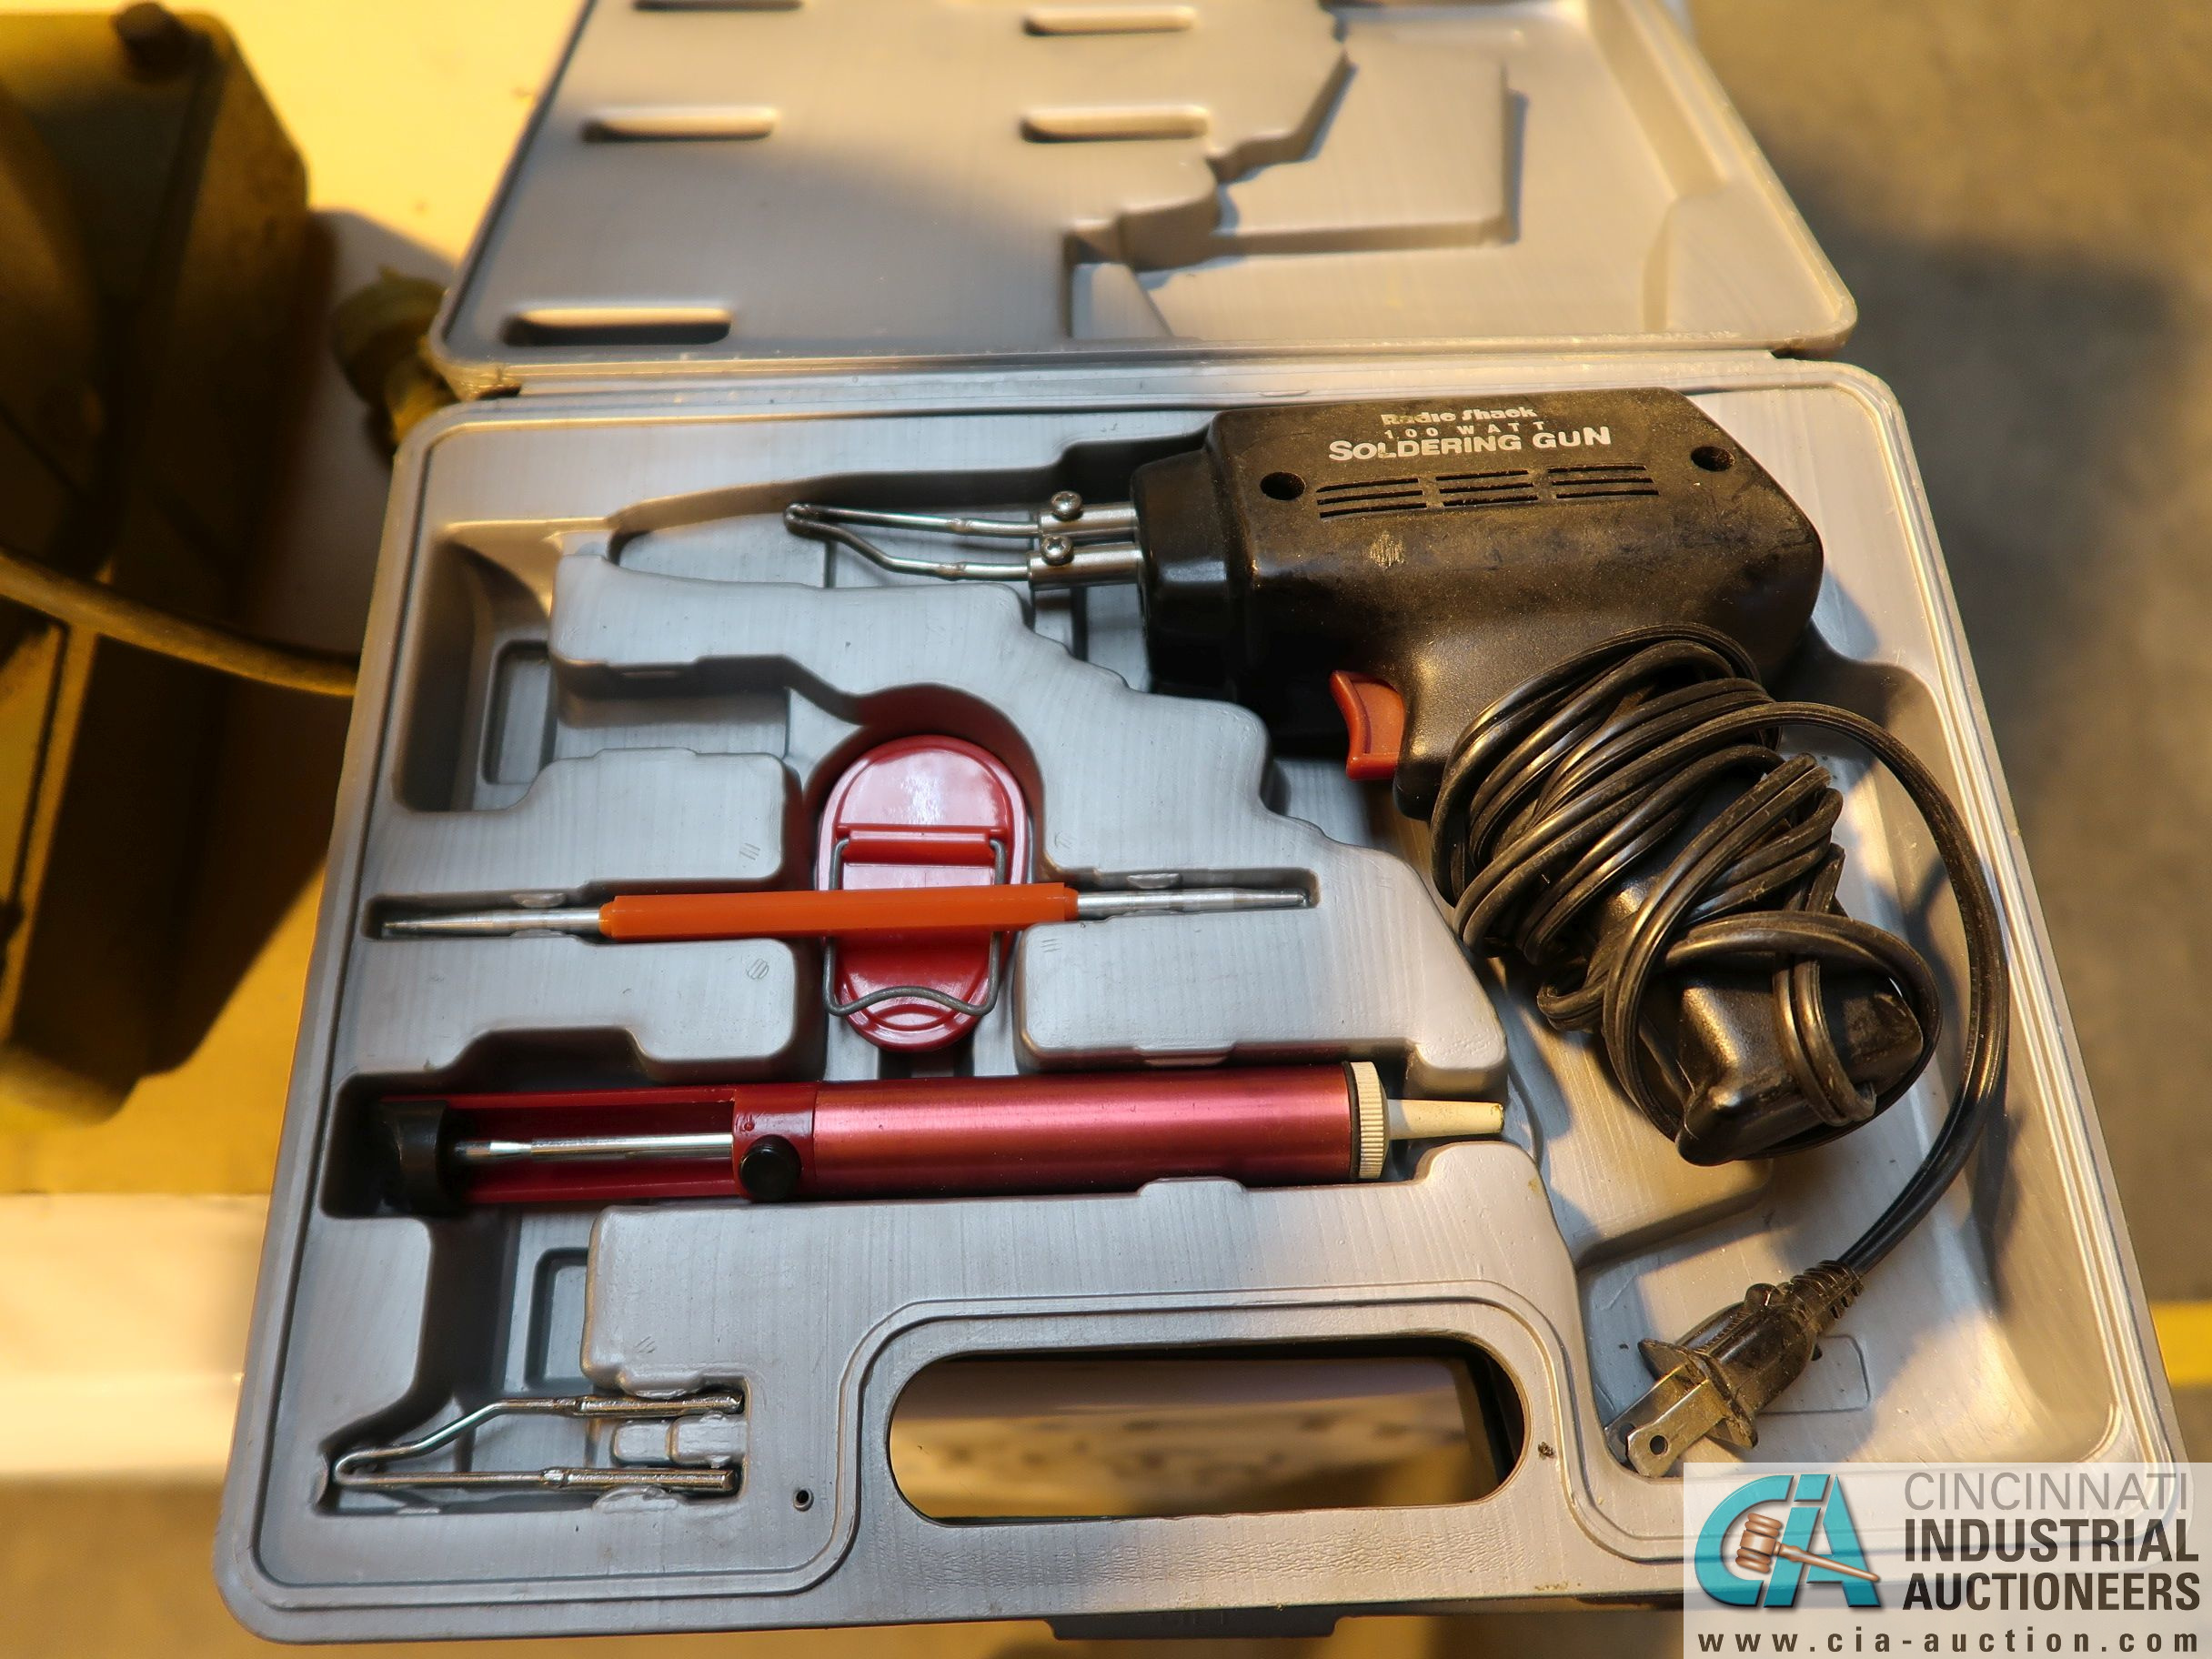 (LOT) (2) ELECTRIC SOLDERING GUNS, SCHUMACHER HOUSEHOLD BATTERY CHARGER AND MISCELLANEOUS - Image 3 of 4